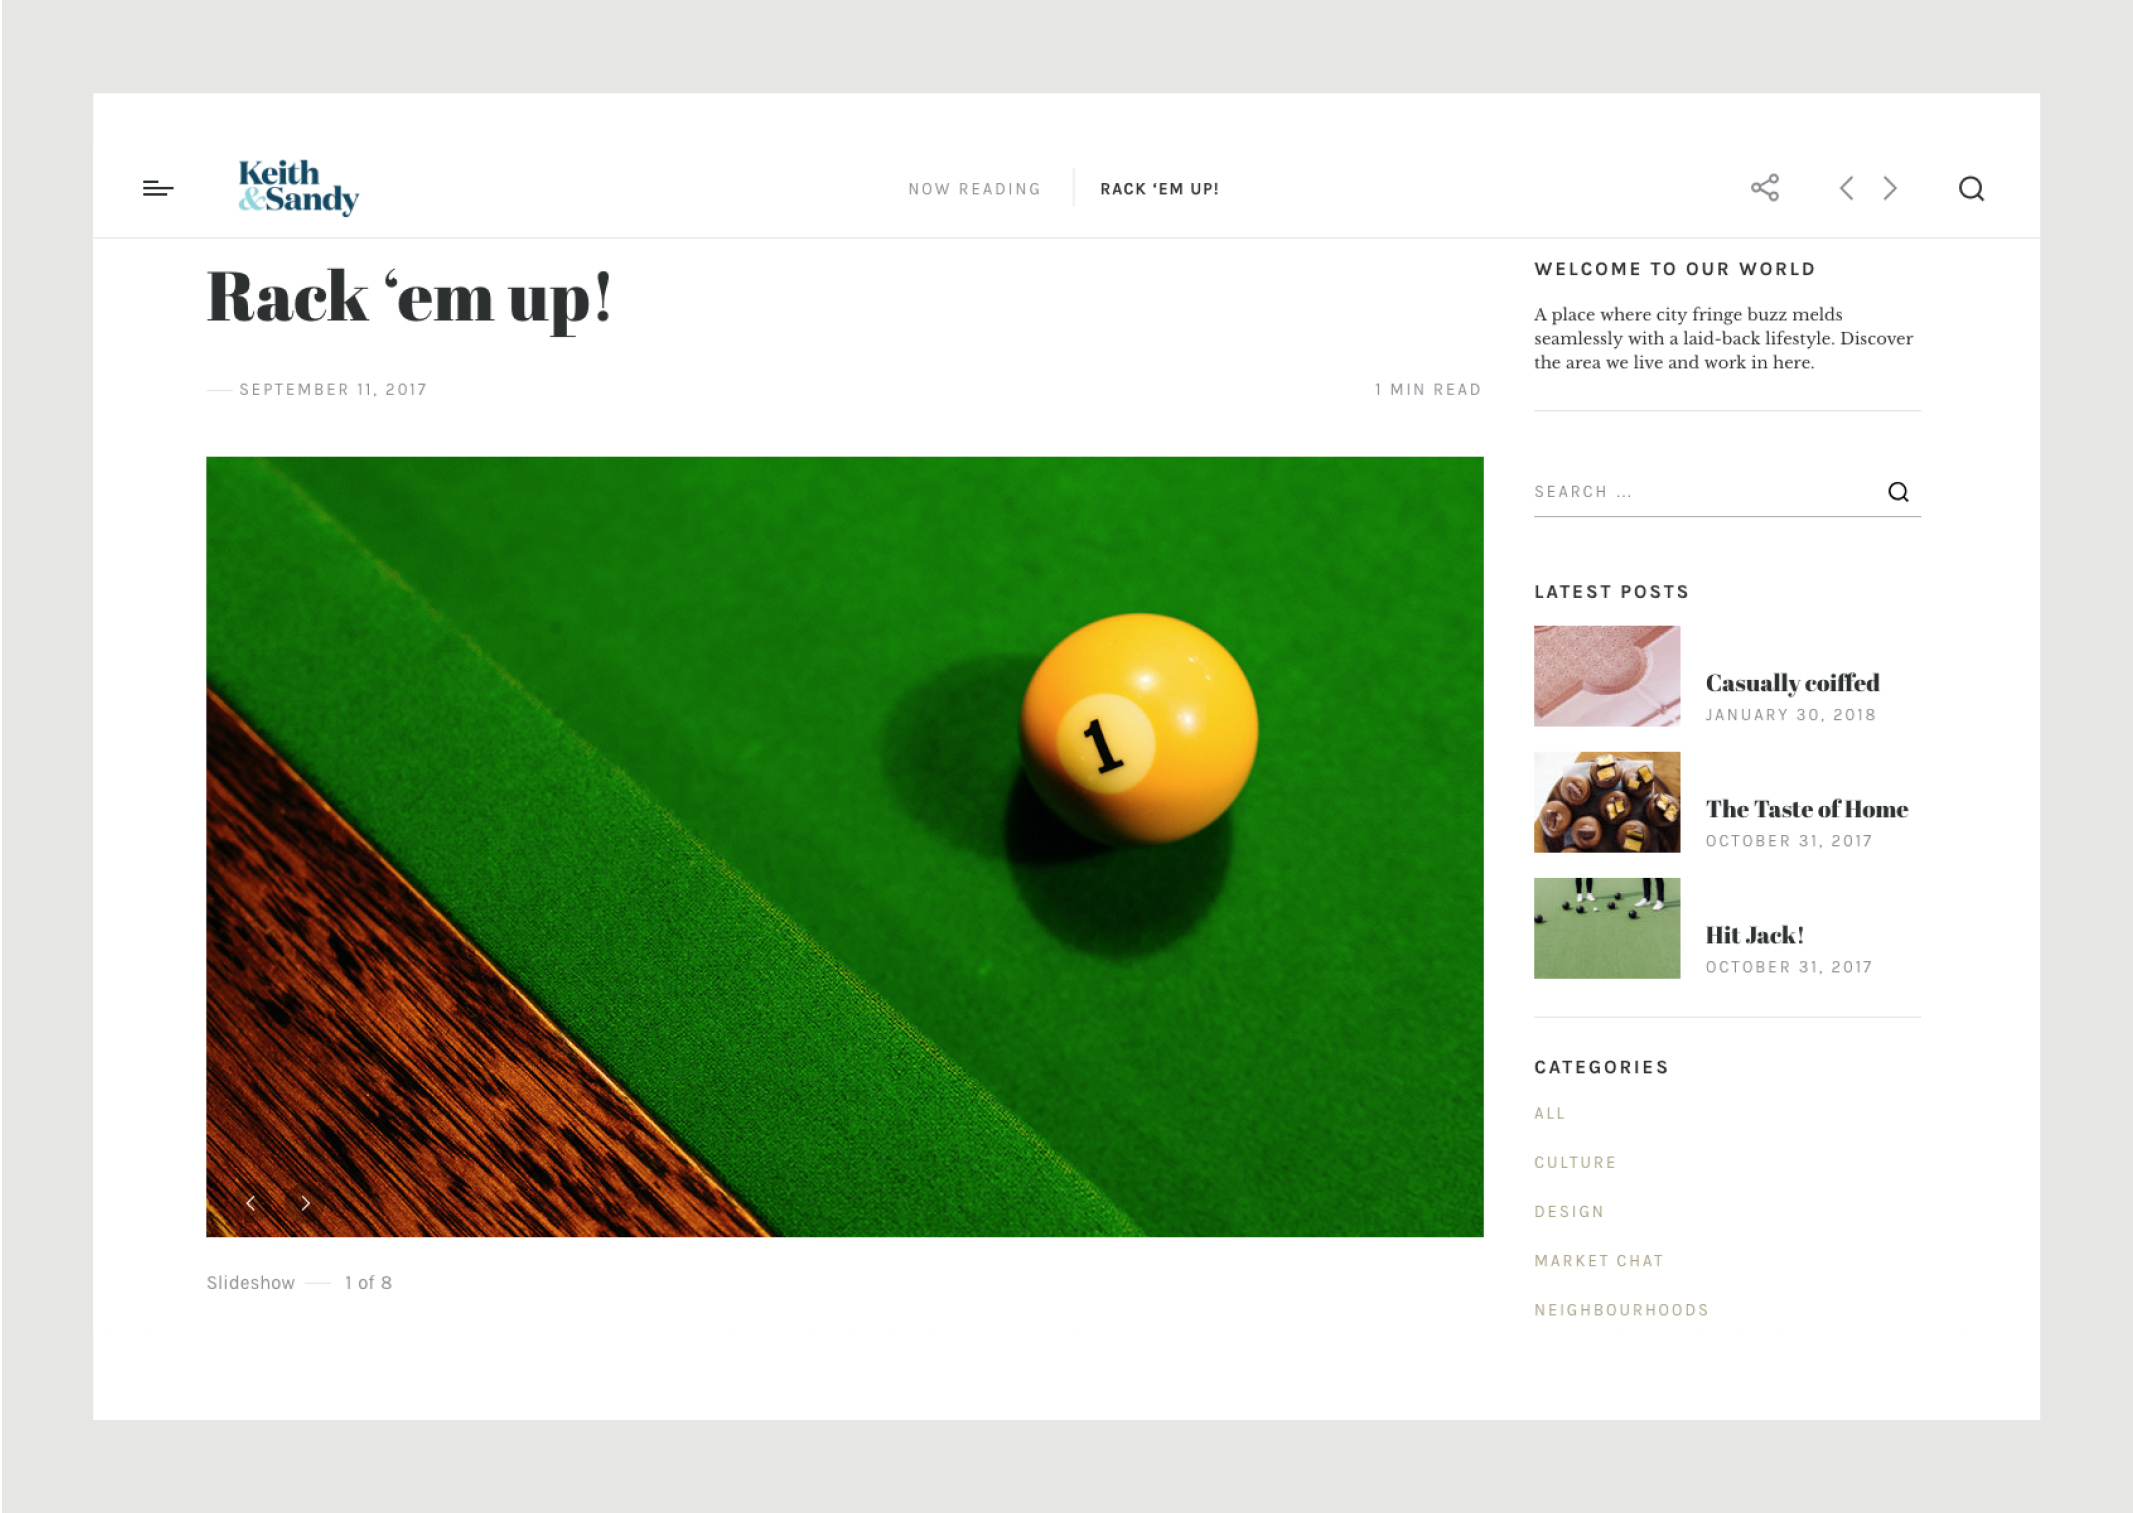 Website blog featuring dramatic close up of yellow ball on green baize of pool tables